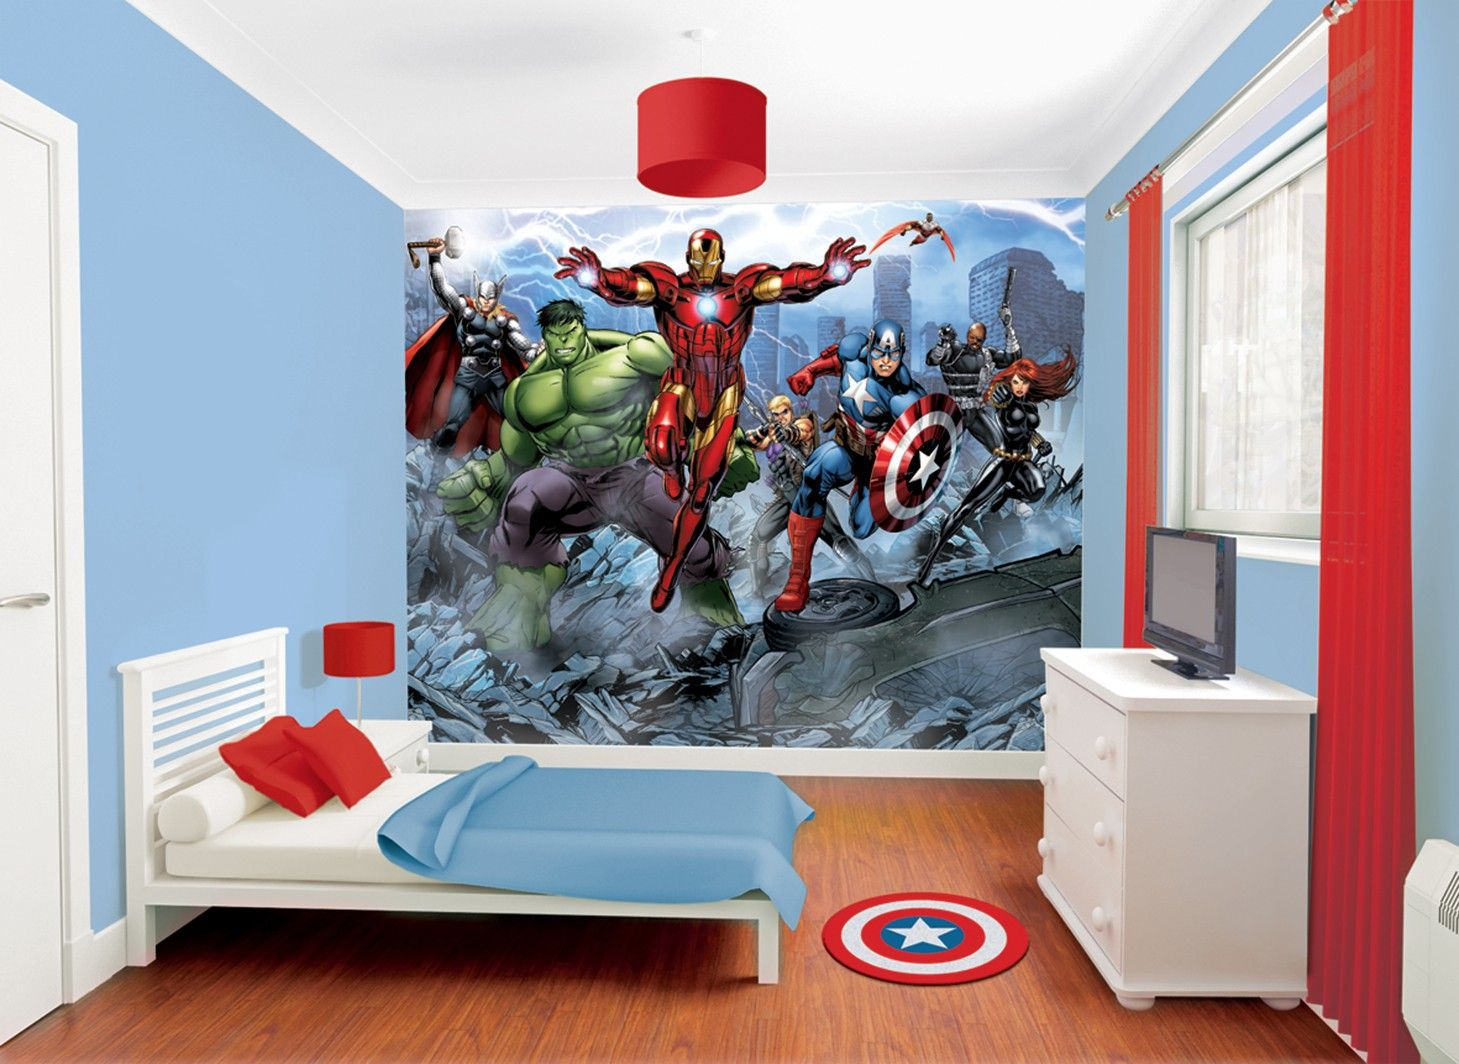 Marvel Bedroom Accessories 17 Best Ideas About Marvel Boys Bedroom On Pinterest Batman Boys